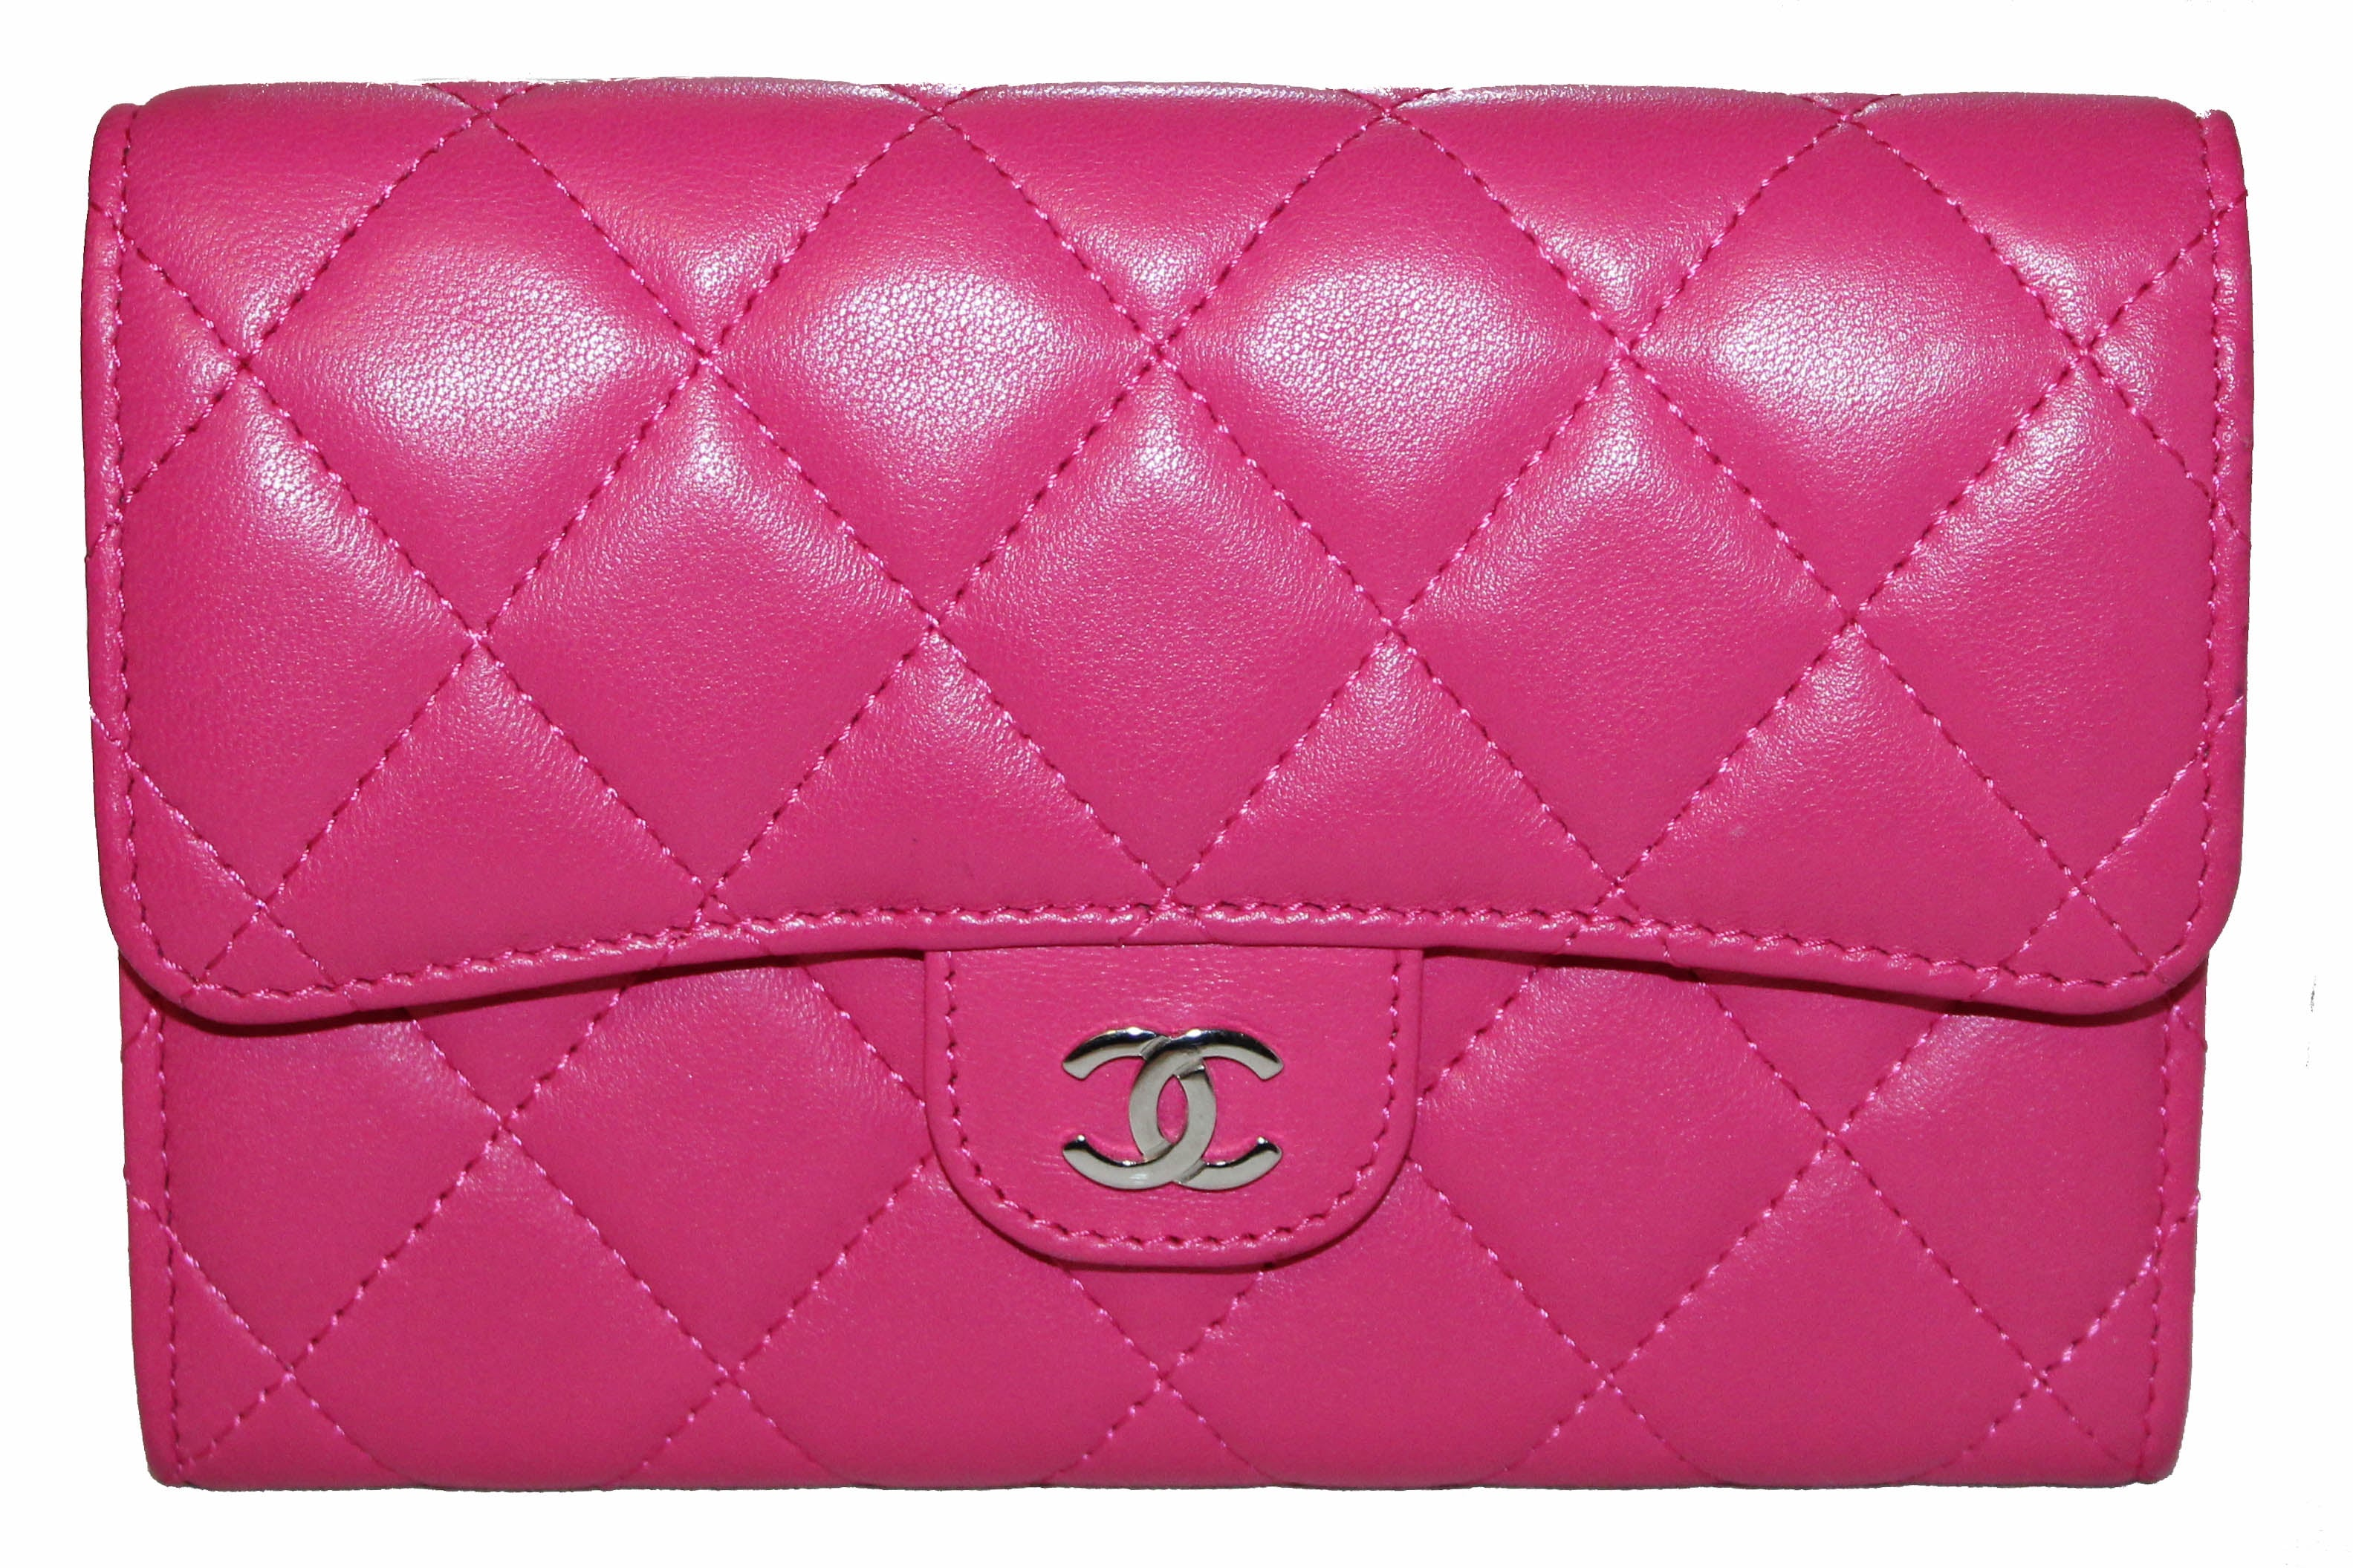 Authentic Chanel Pink Quilted Lambskin Leather Classic Flap Wallet